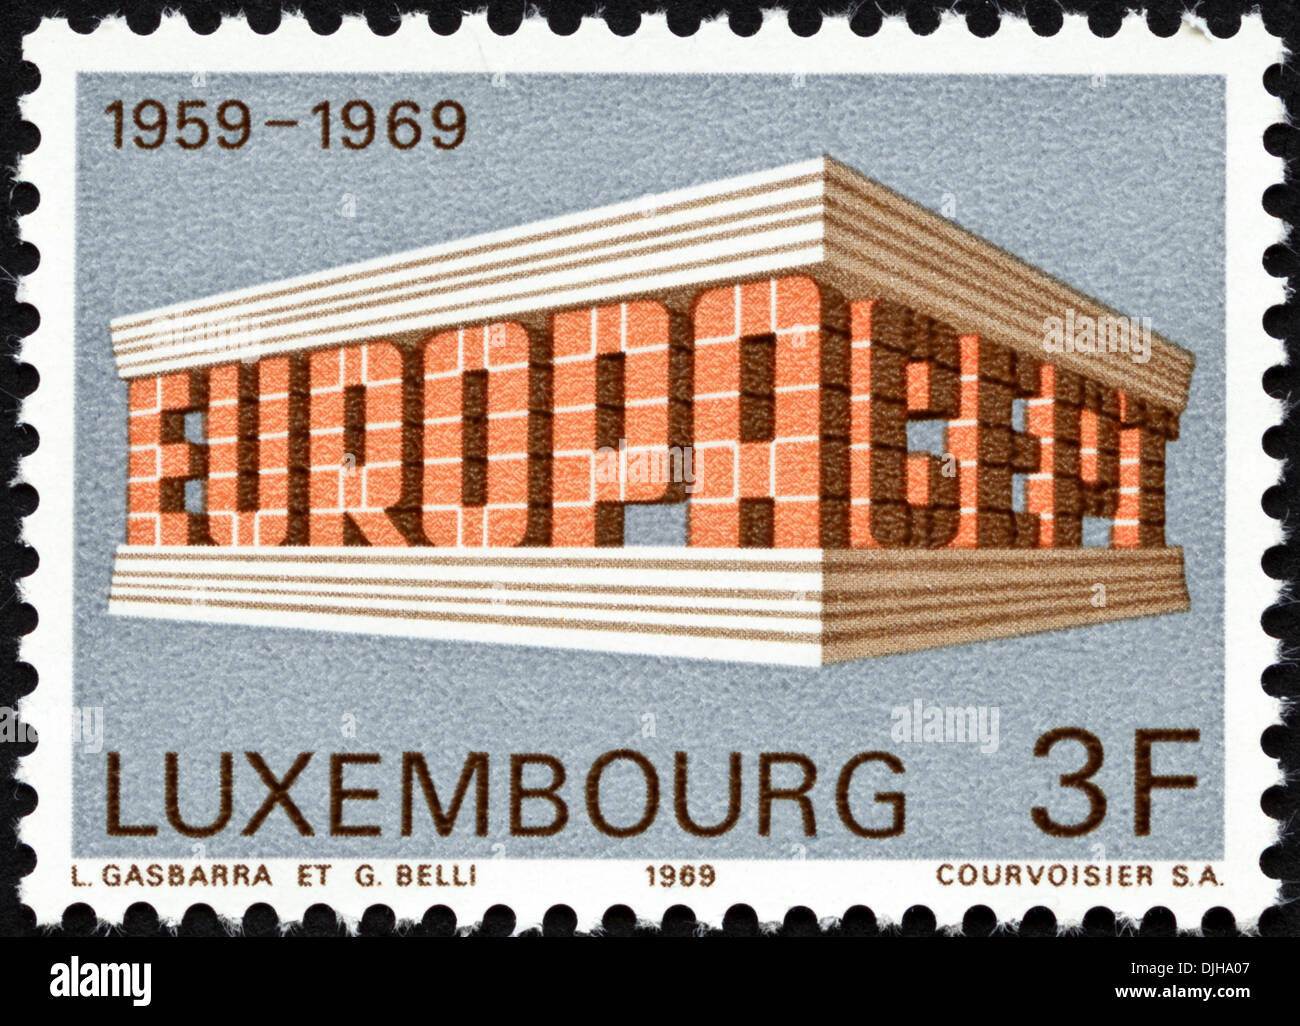 postage stamp Luxembourg 3F featuring Europa CEPT 1959 - 1969 dated 1969 - Stock Image